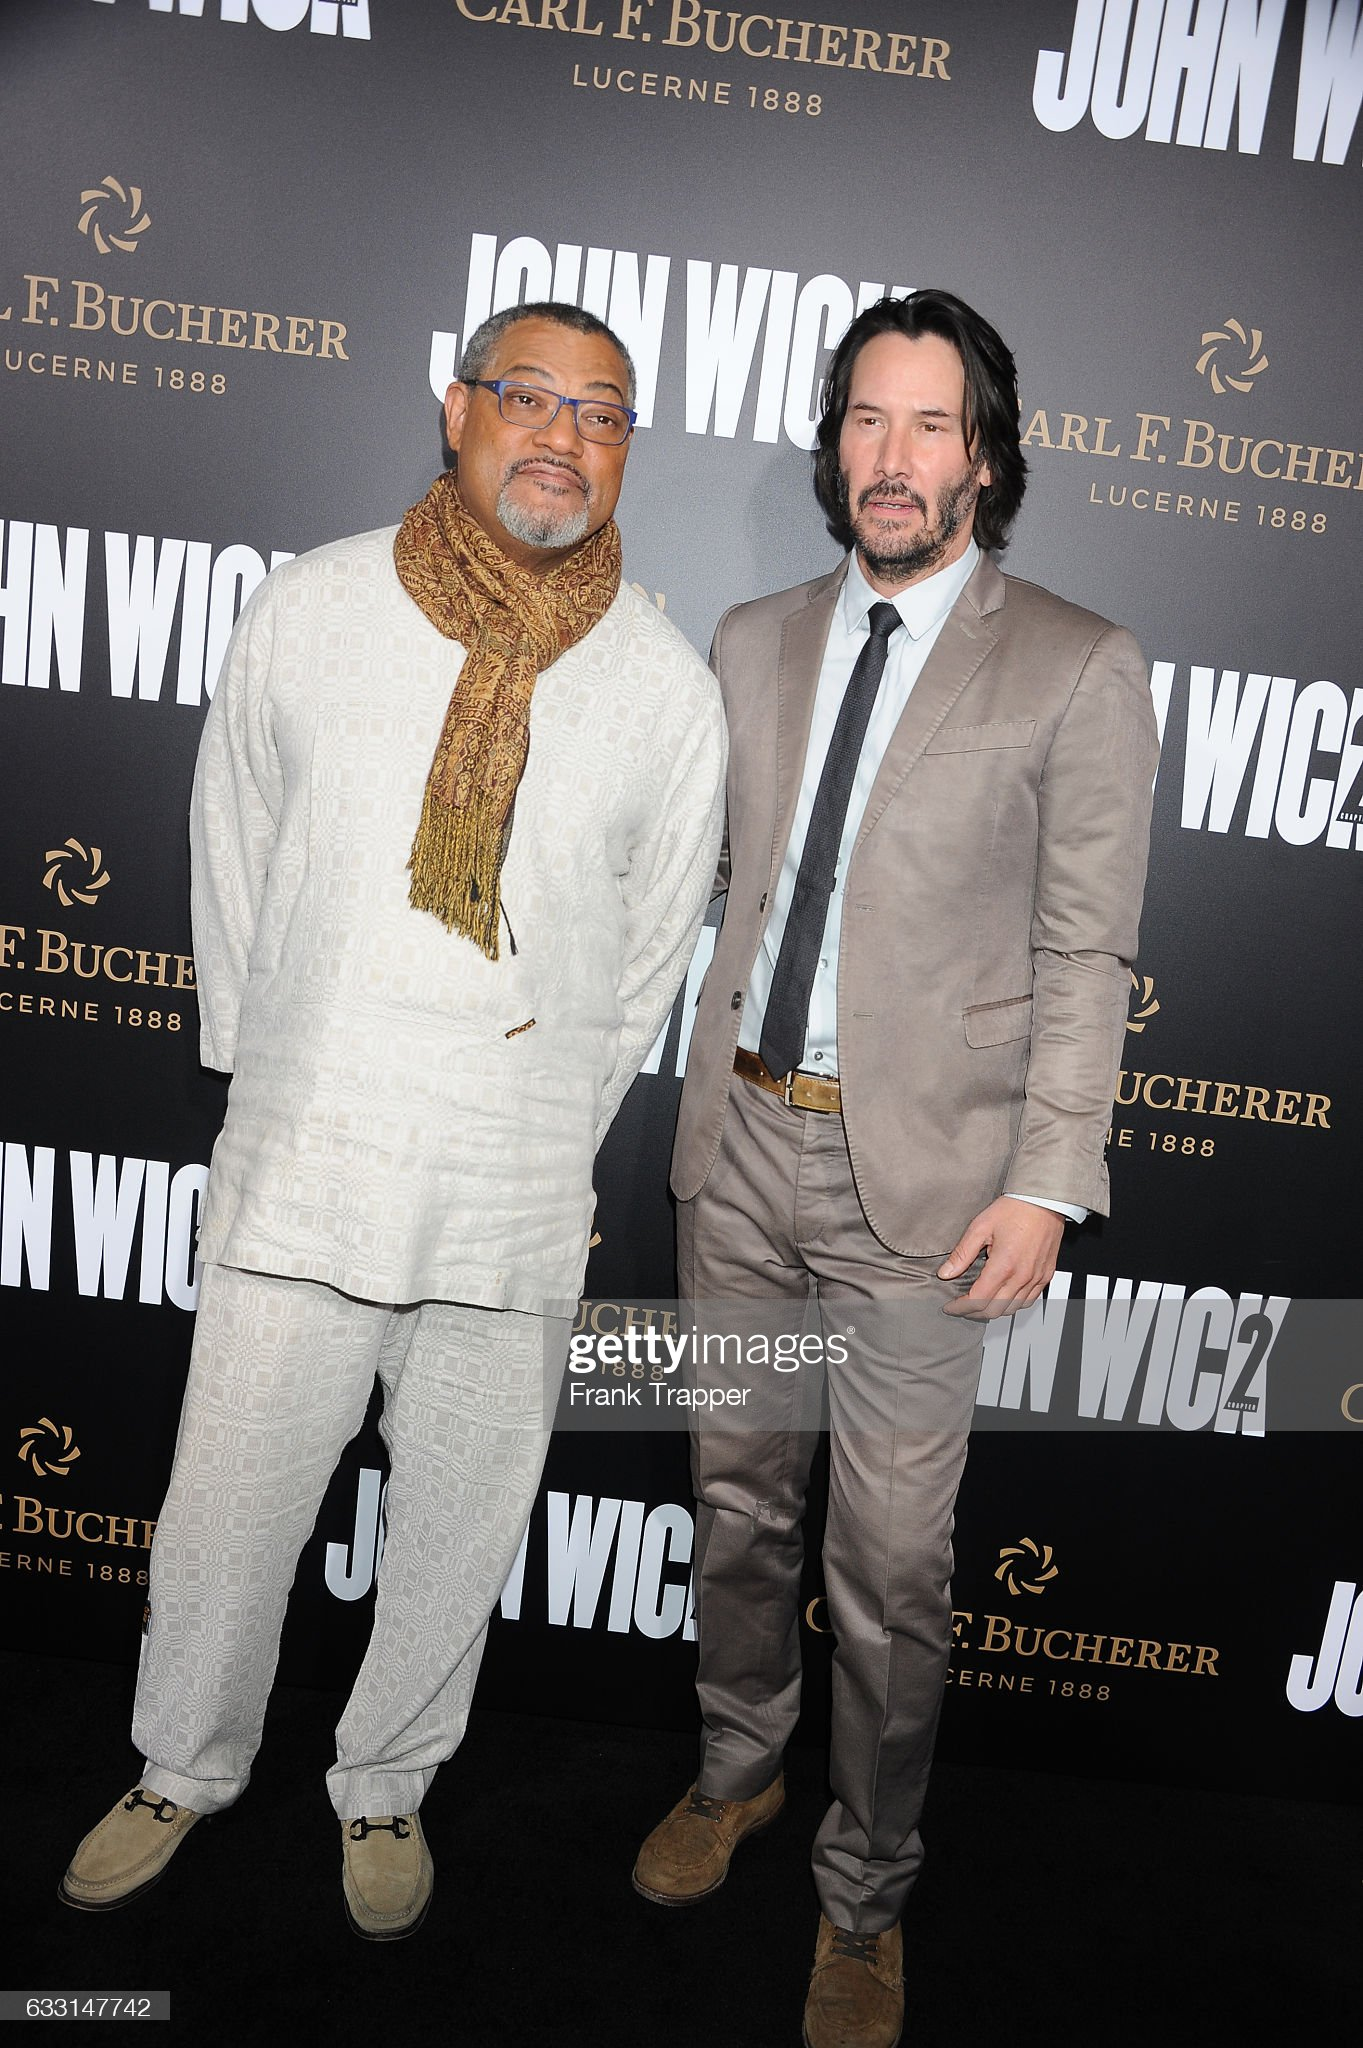 ¿Cuánto mide Laurence Fishburne? - Real height Actors-laurence-fishburne-and-keanu-reeves-attend-the-premiere-of-picture-id633147742?s=2048x2048